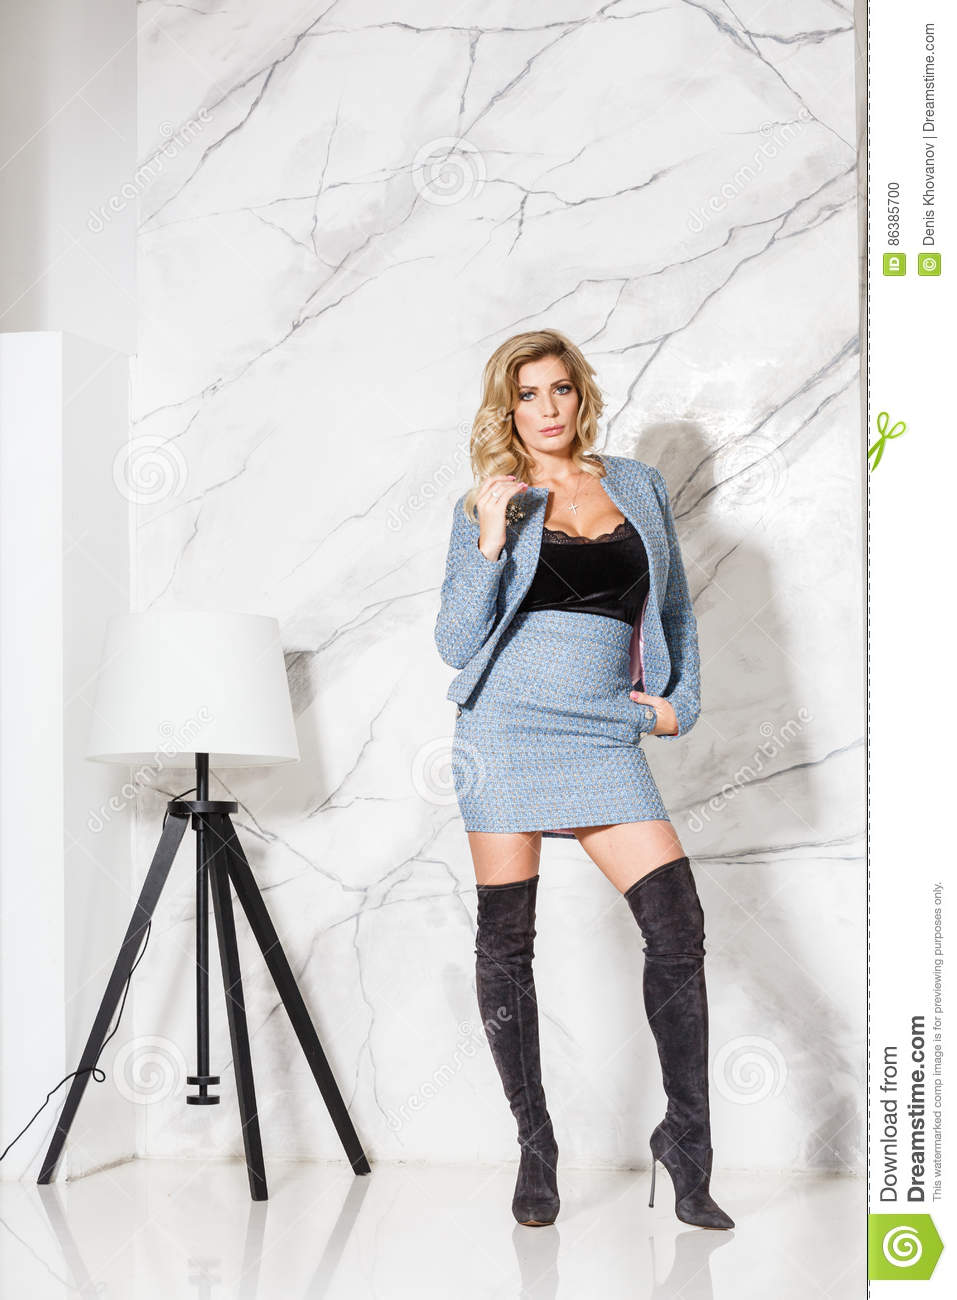 Beautiful blonde in business skirt and jacket posing on a marble background